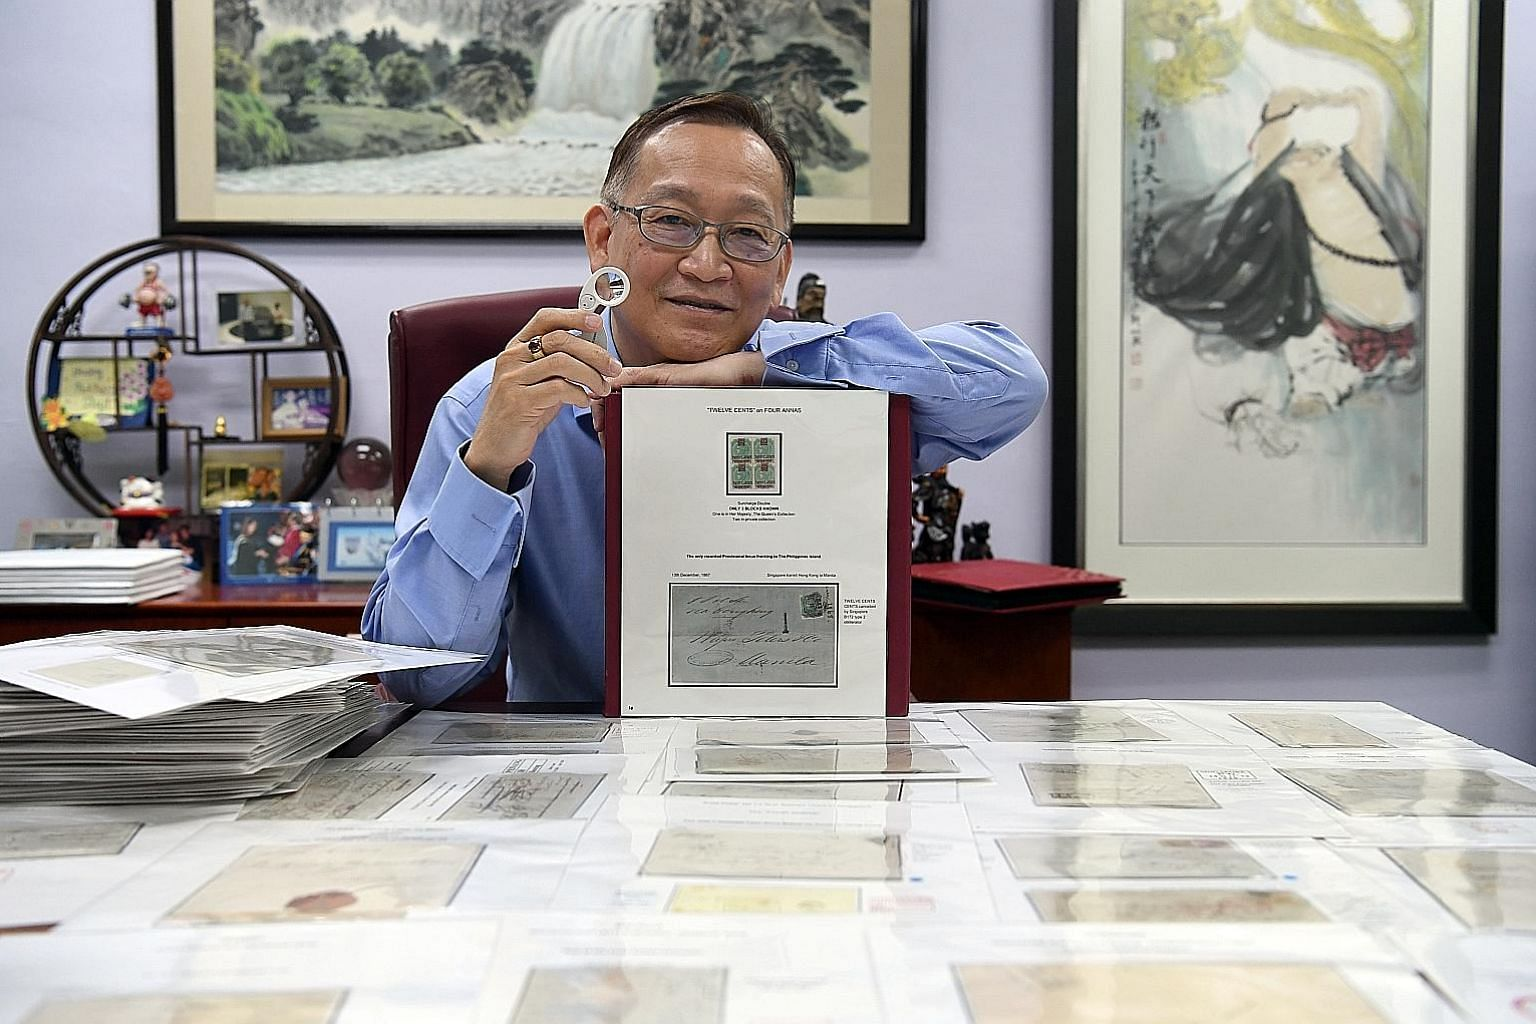 Avid stamp collector Richard Tan's (above) pieces include a 12-anna error stamp (right) and an extremely rare 1890 North Borneo cover (far right).